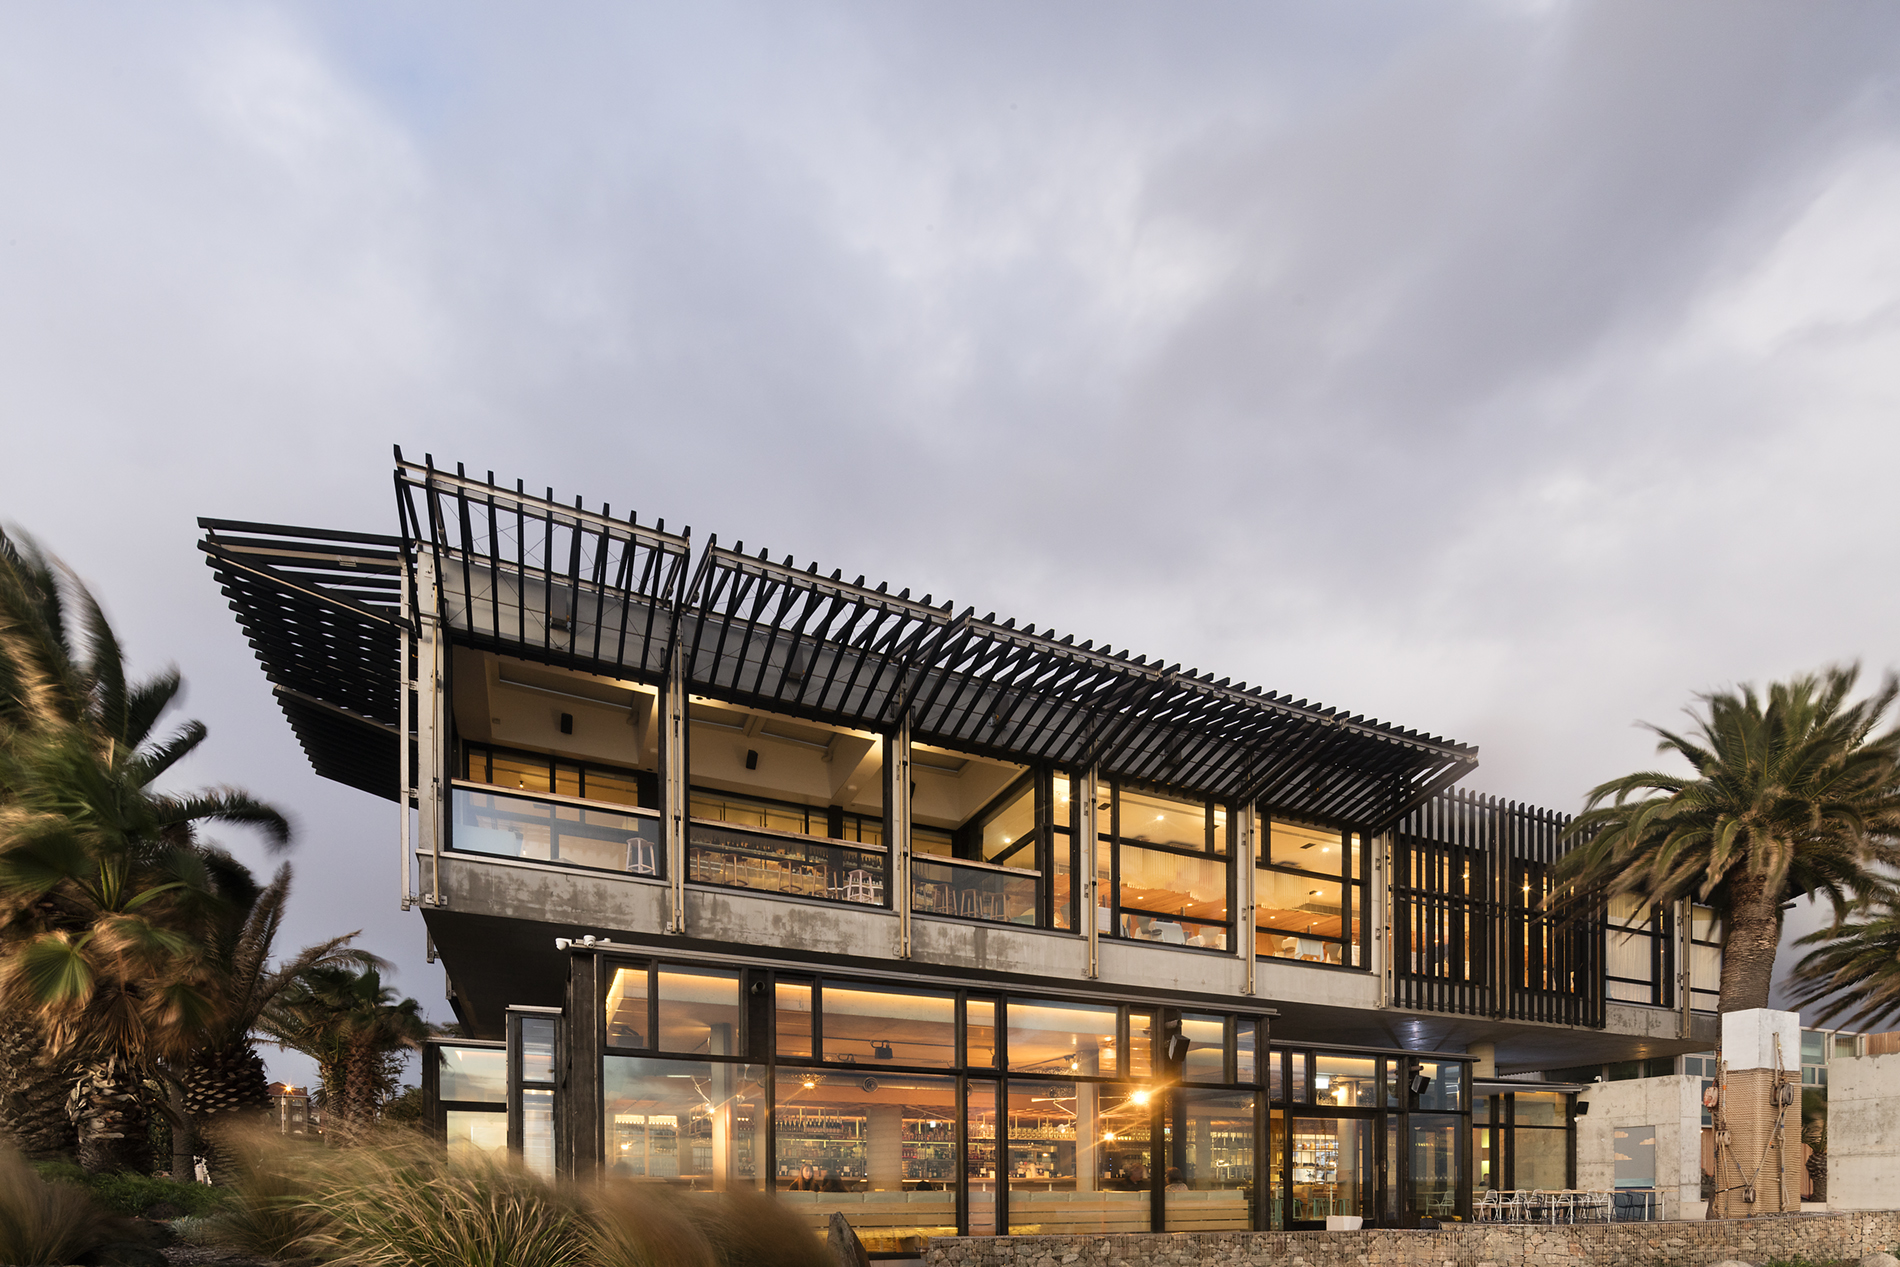 stokehouse-st-kilda-architecture-by-robert-simeoni-architects